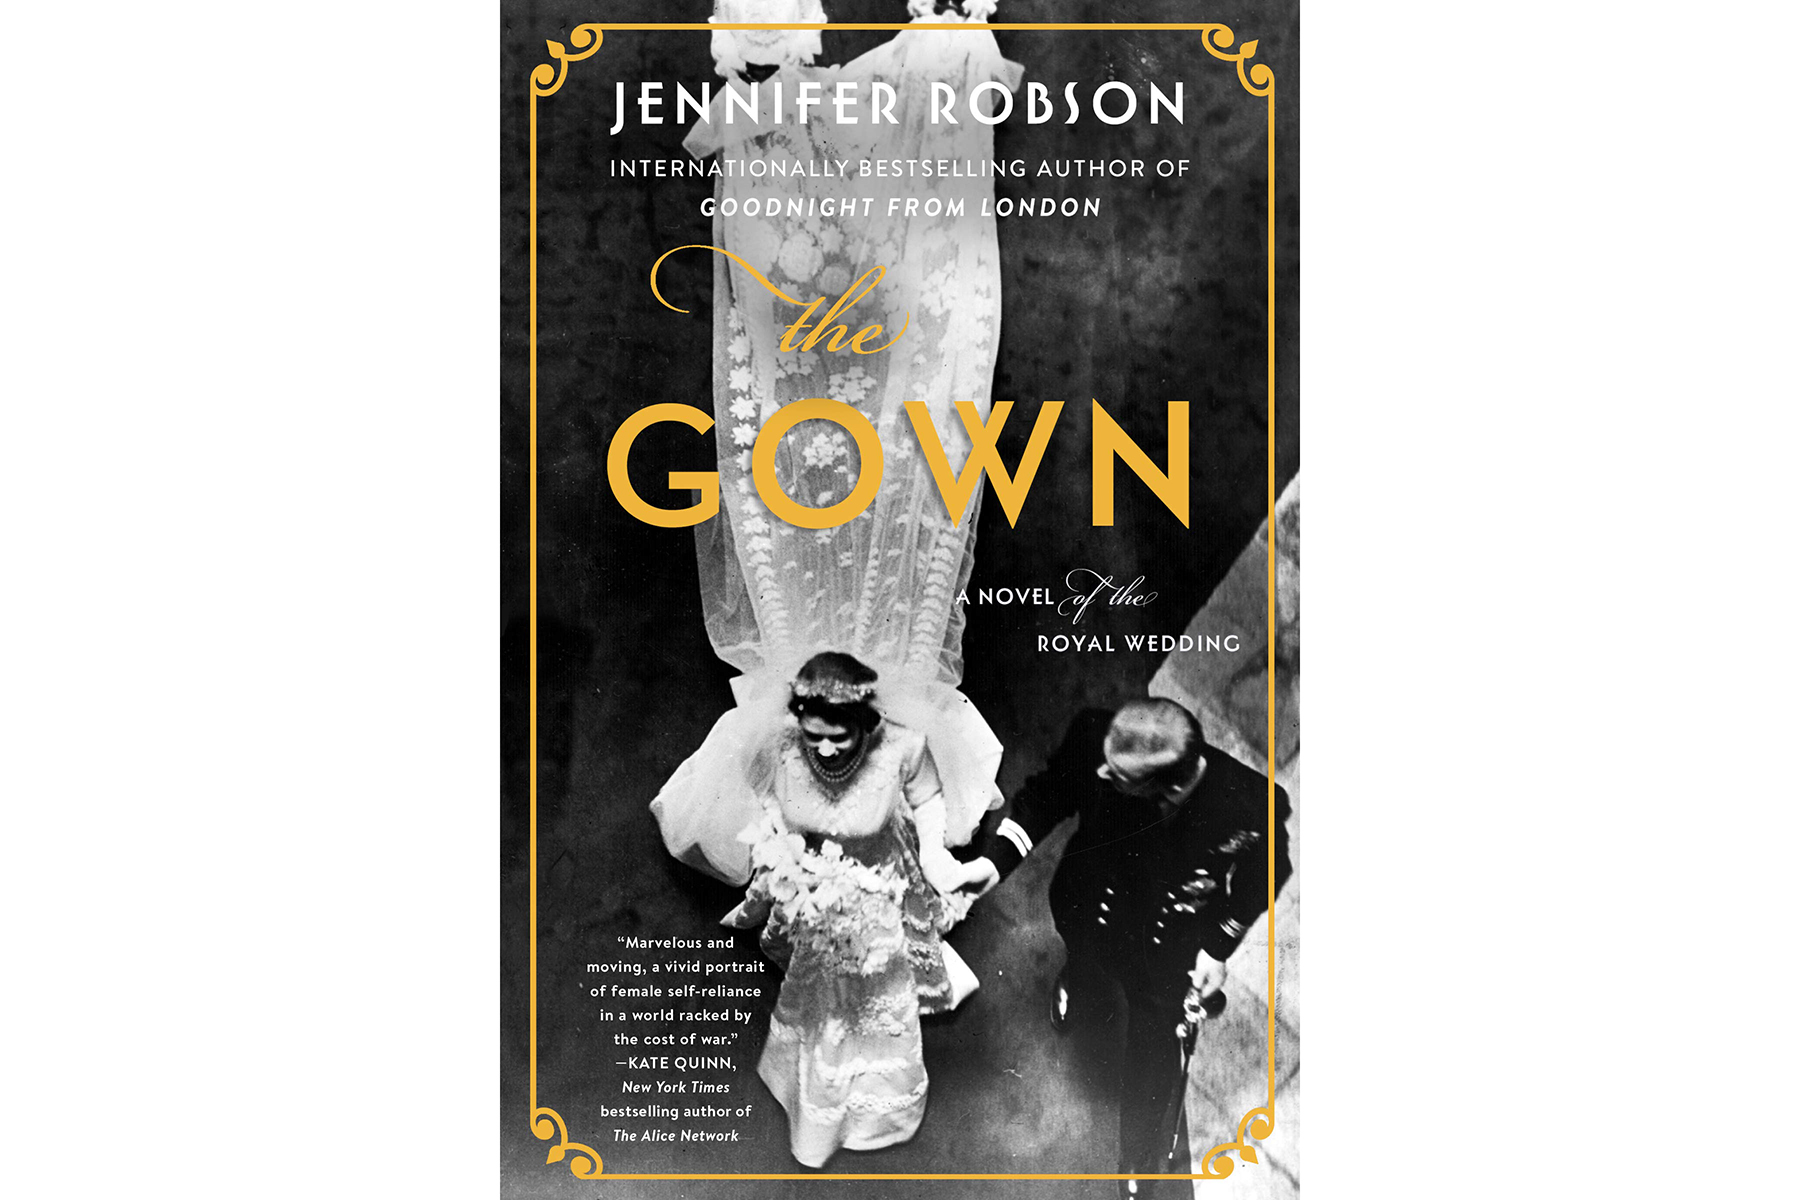 Cover of The Gown, by Jennifer Robson